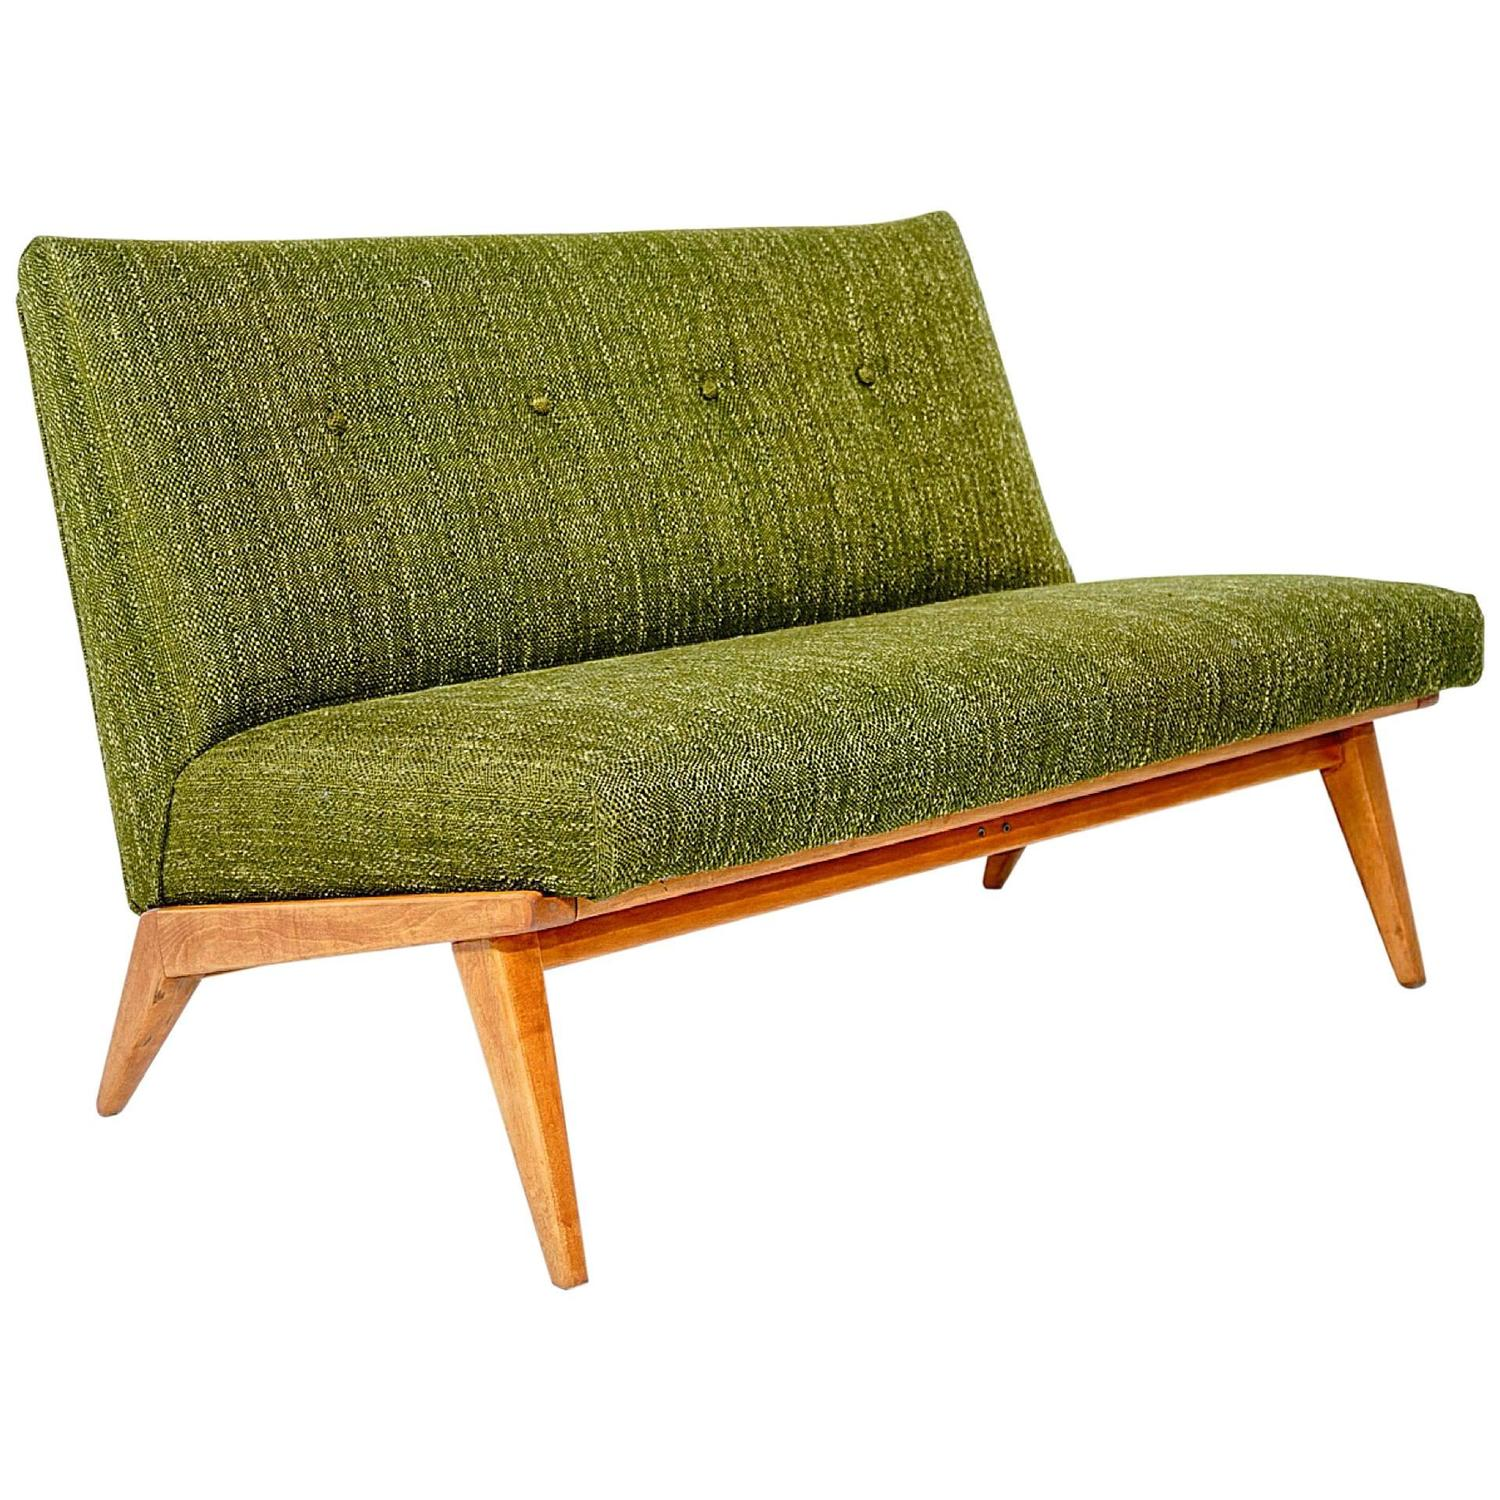 Gorgeous Mid Century Modern Knoll Settee By Jens Risom At